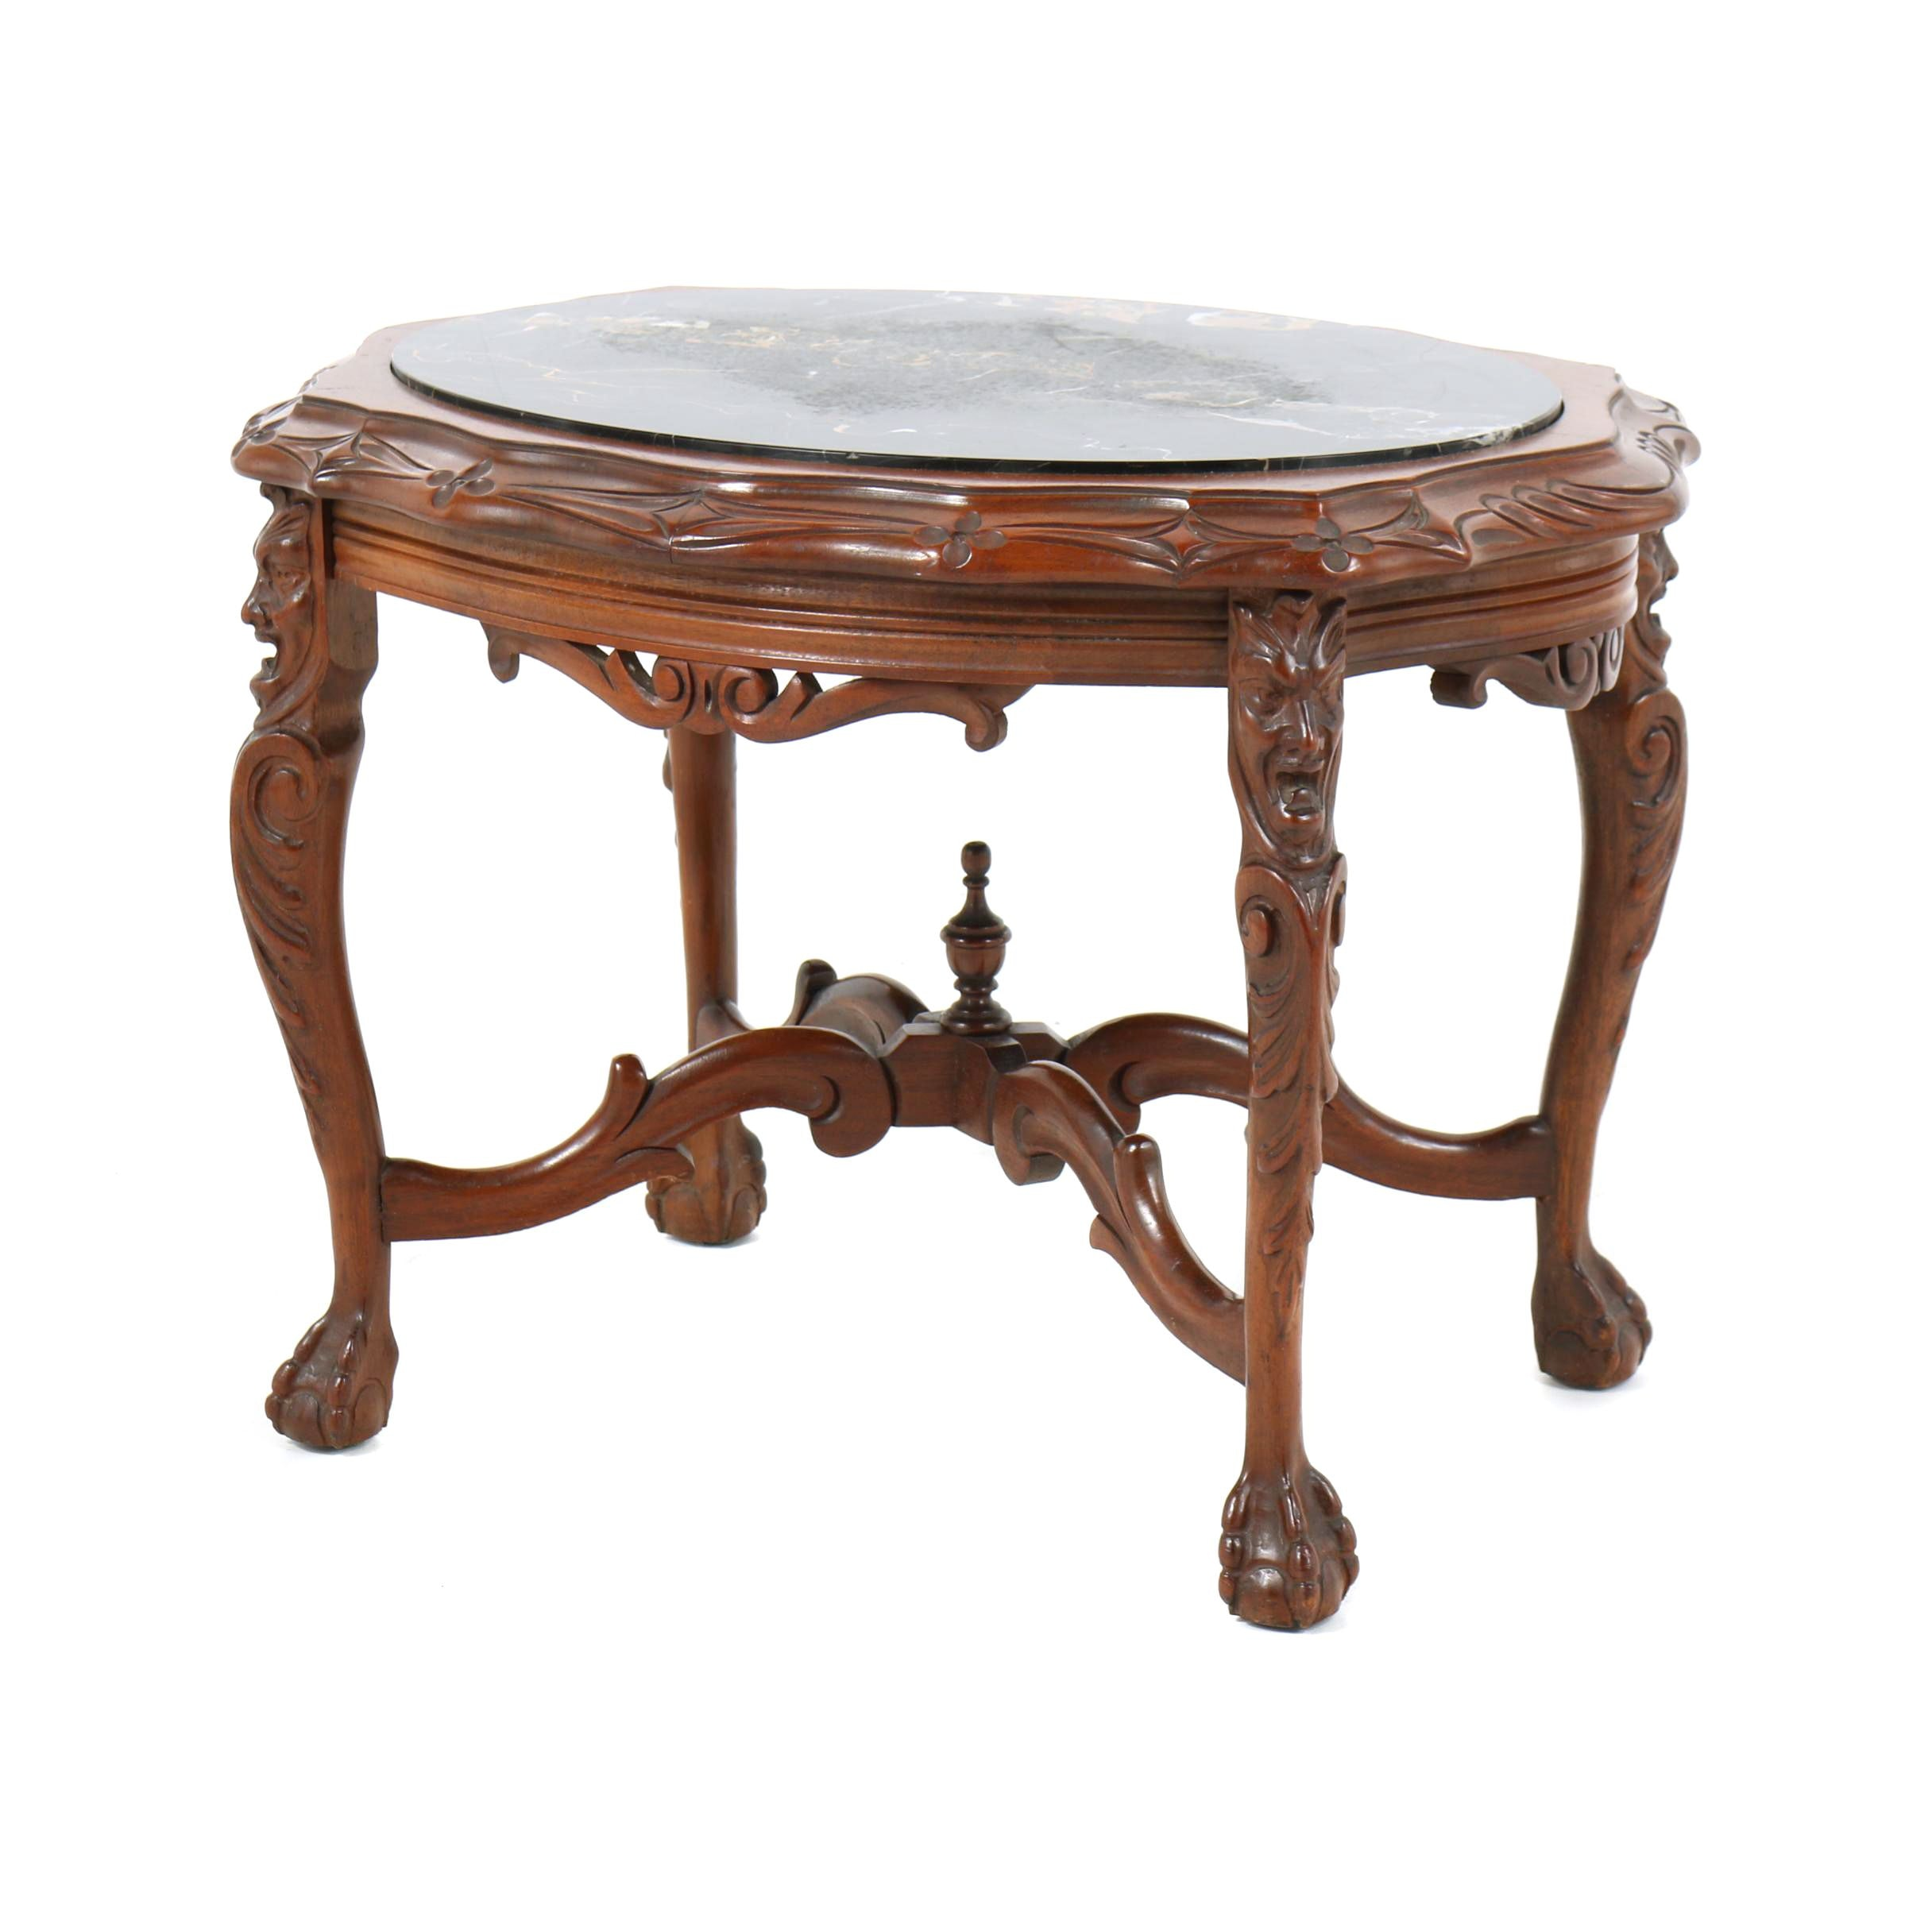 George II Style Stone Top Walnut Cocktail Table, 20th Century